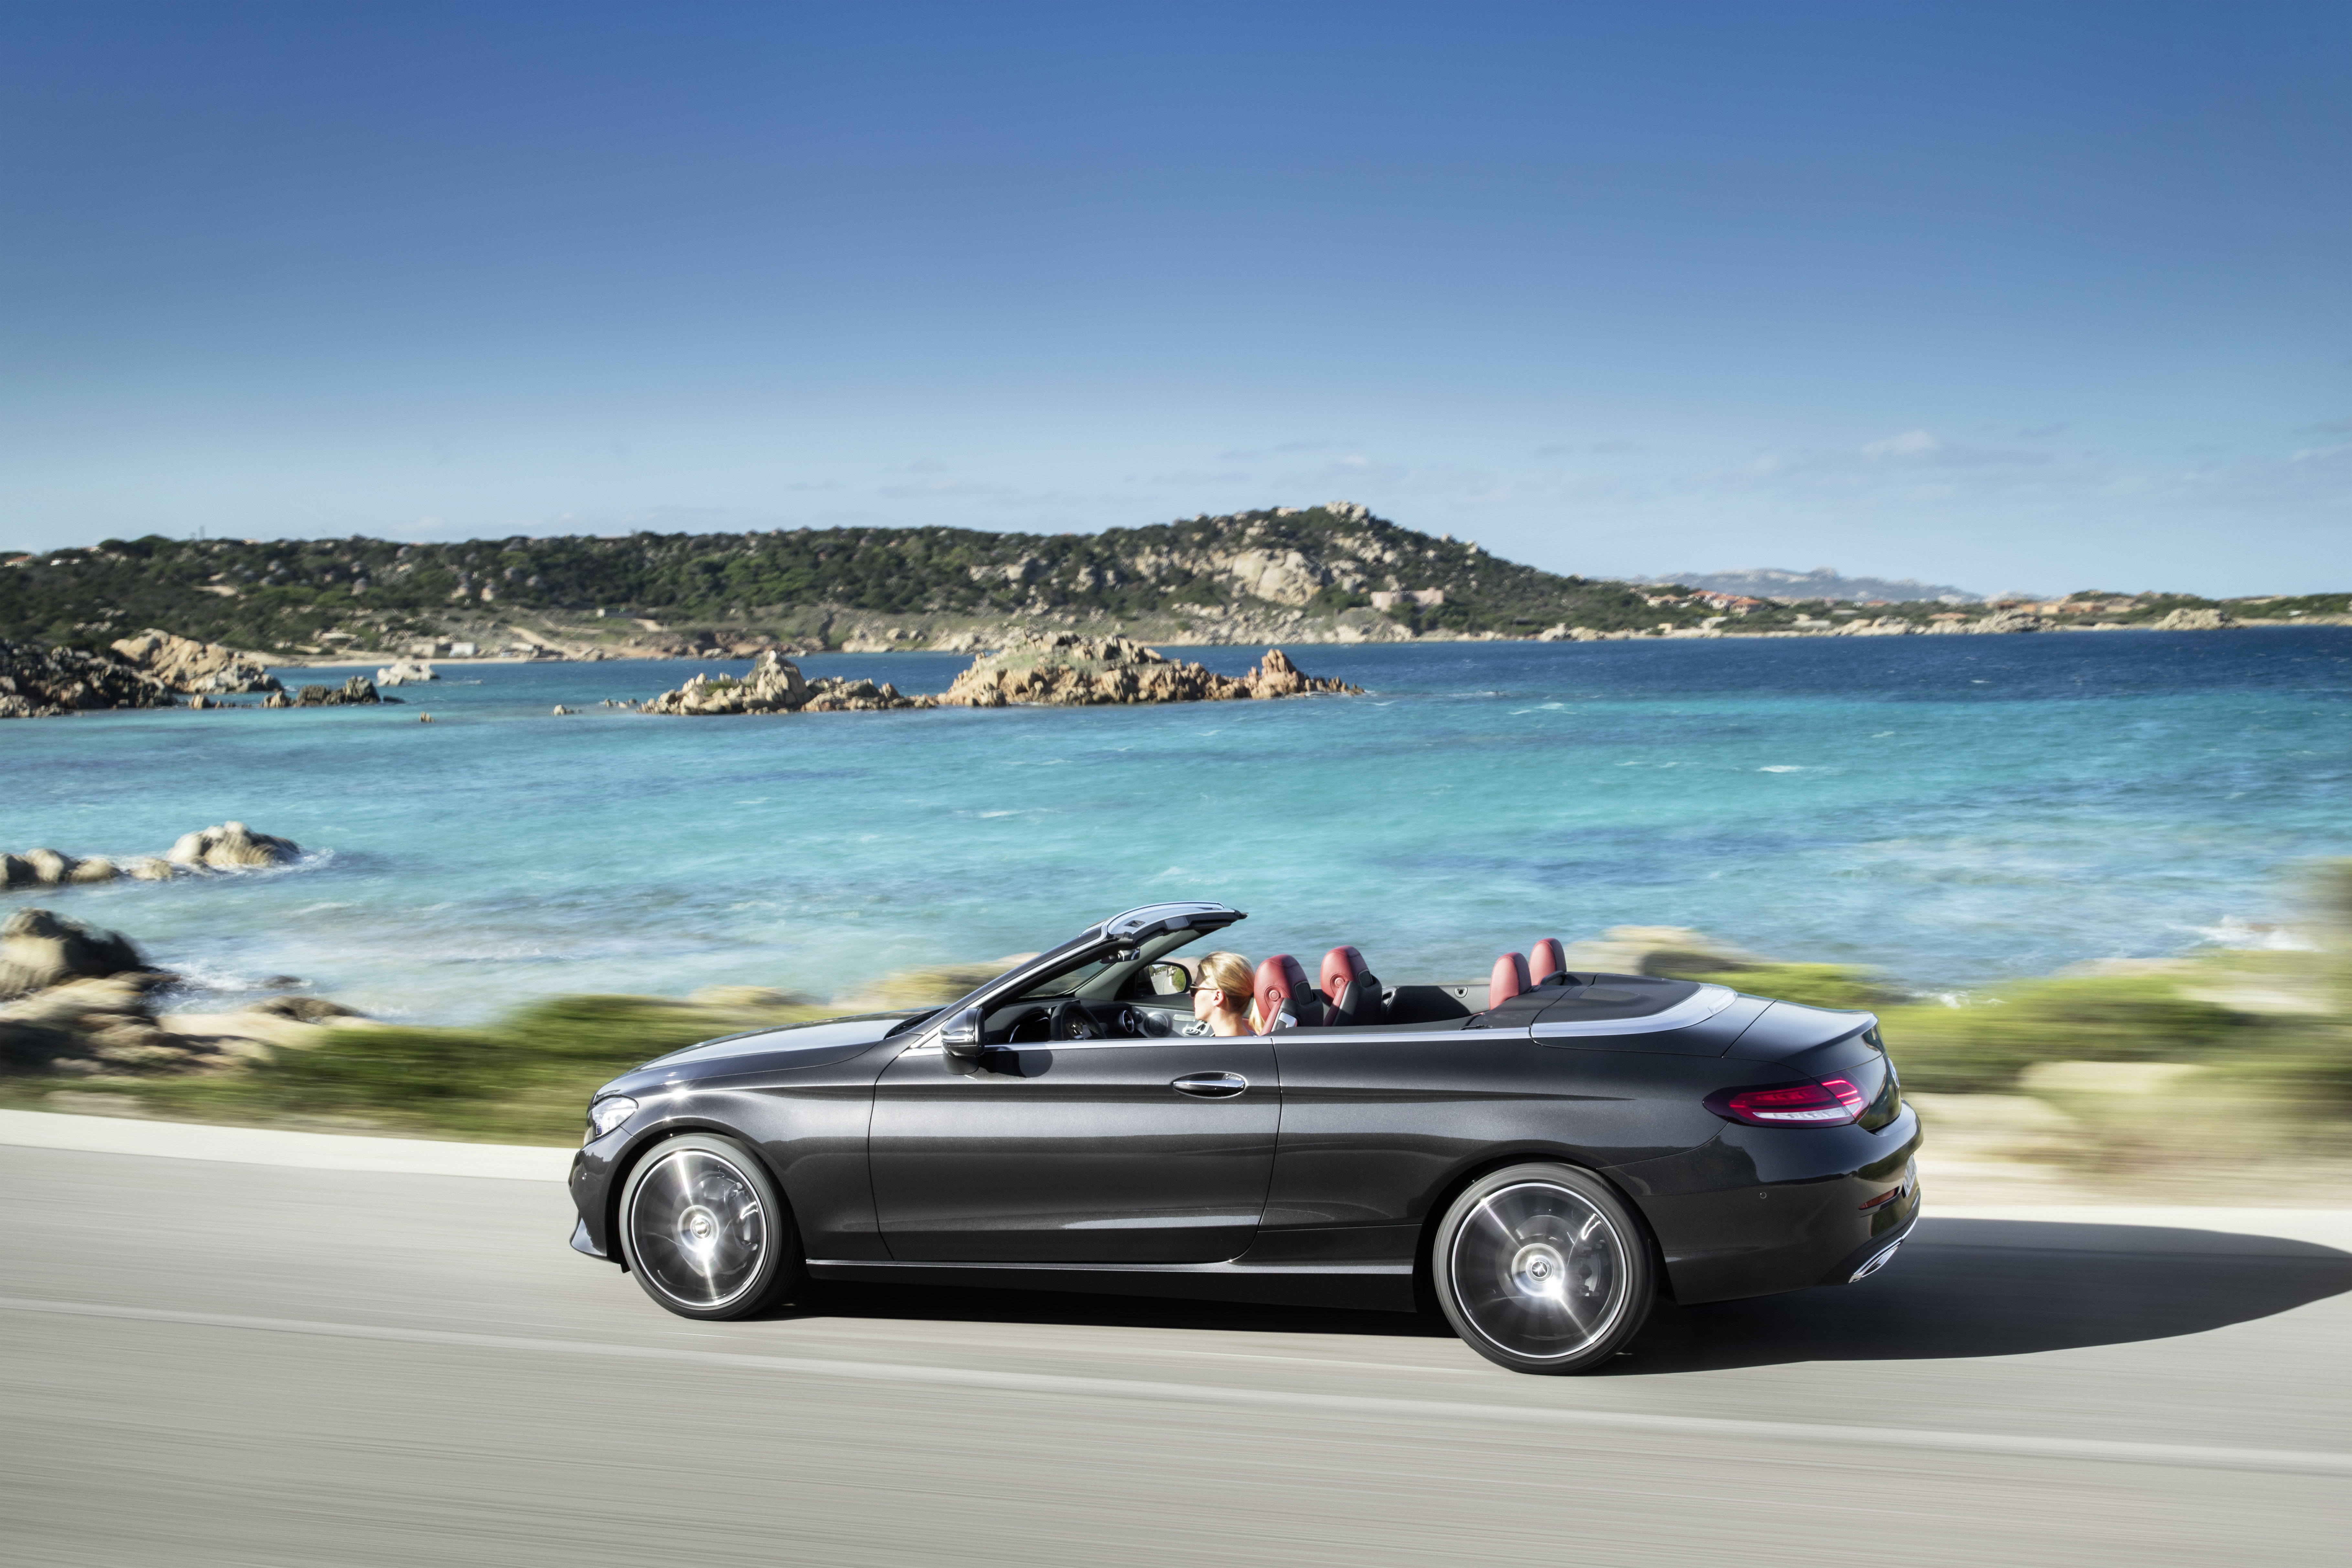 Mercedes C-Class Cabrio (A205) modern specifications